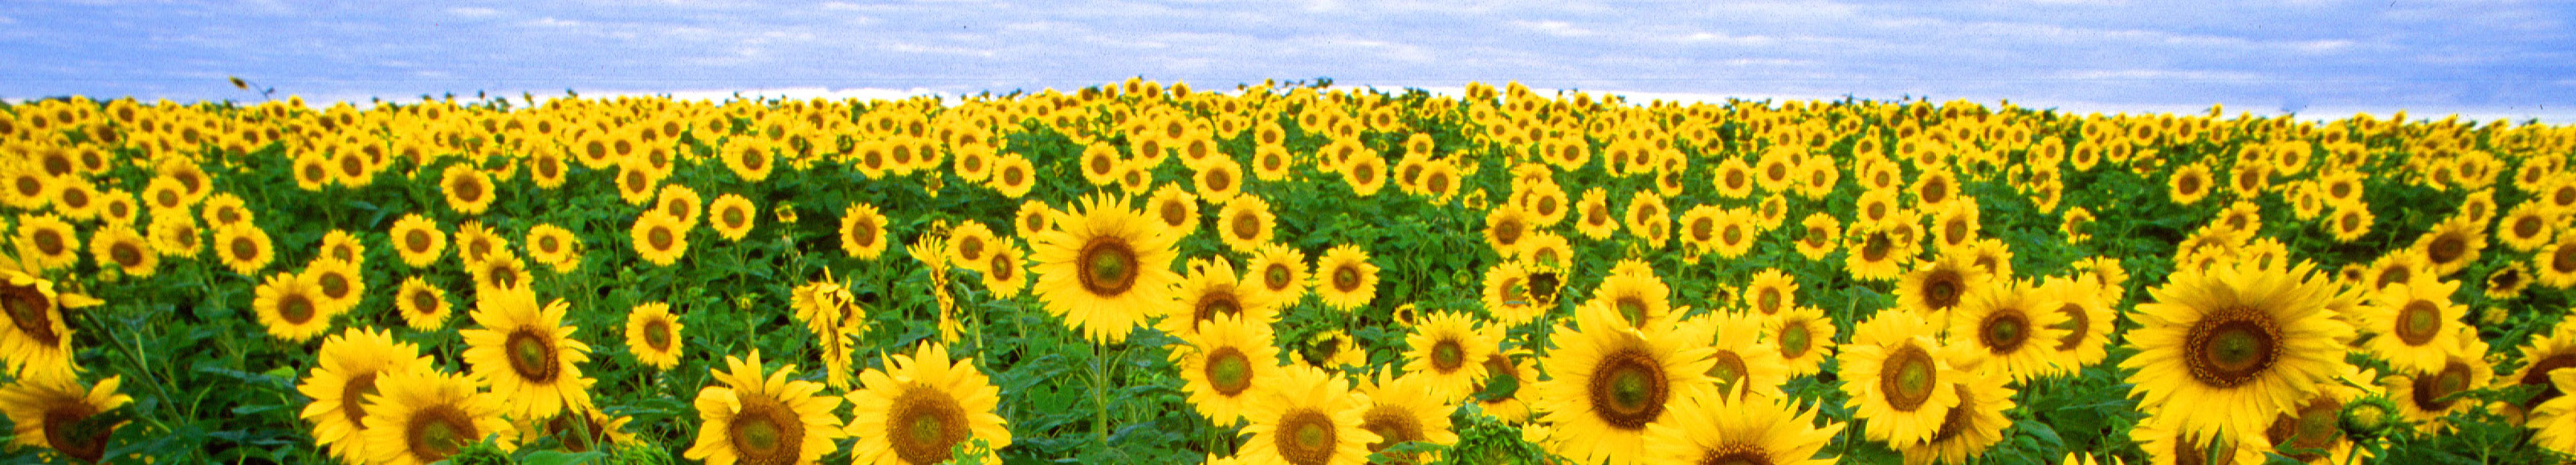 images/sunflowers.jpg